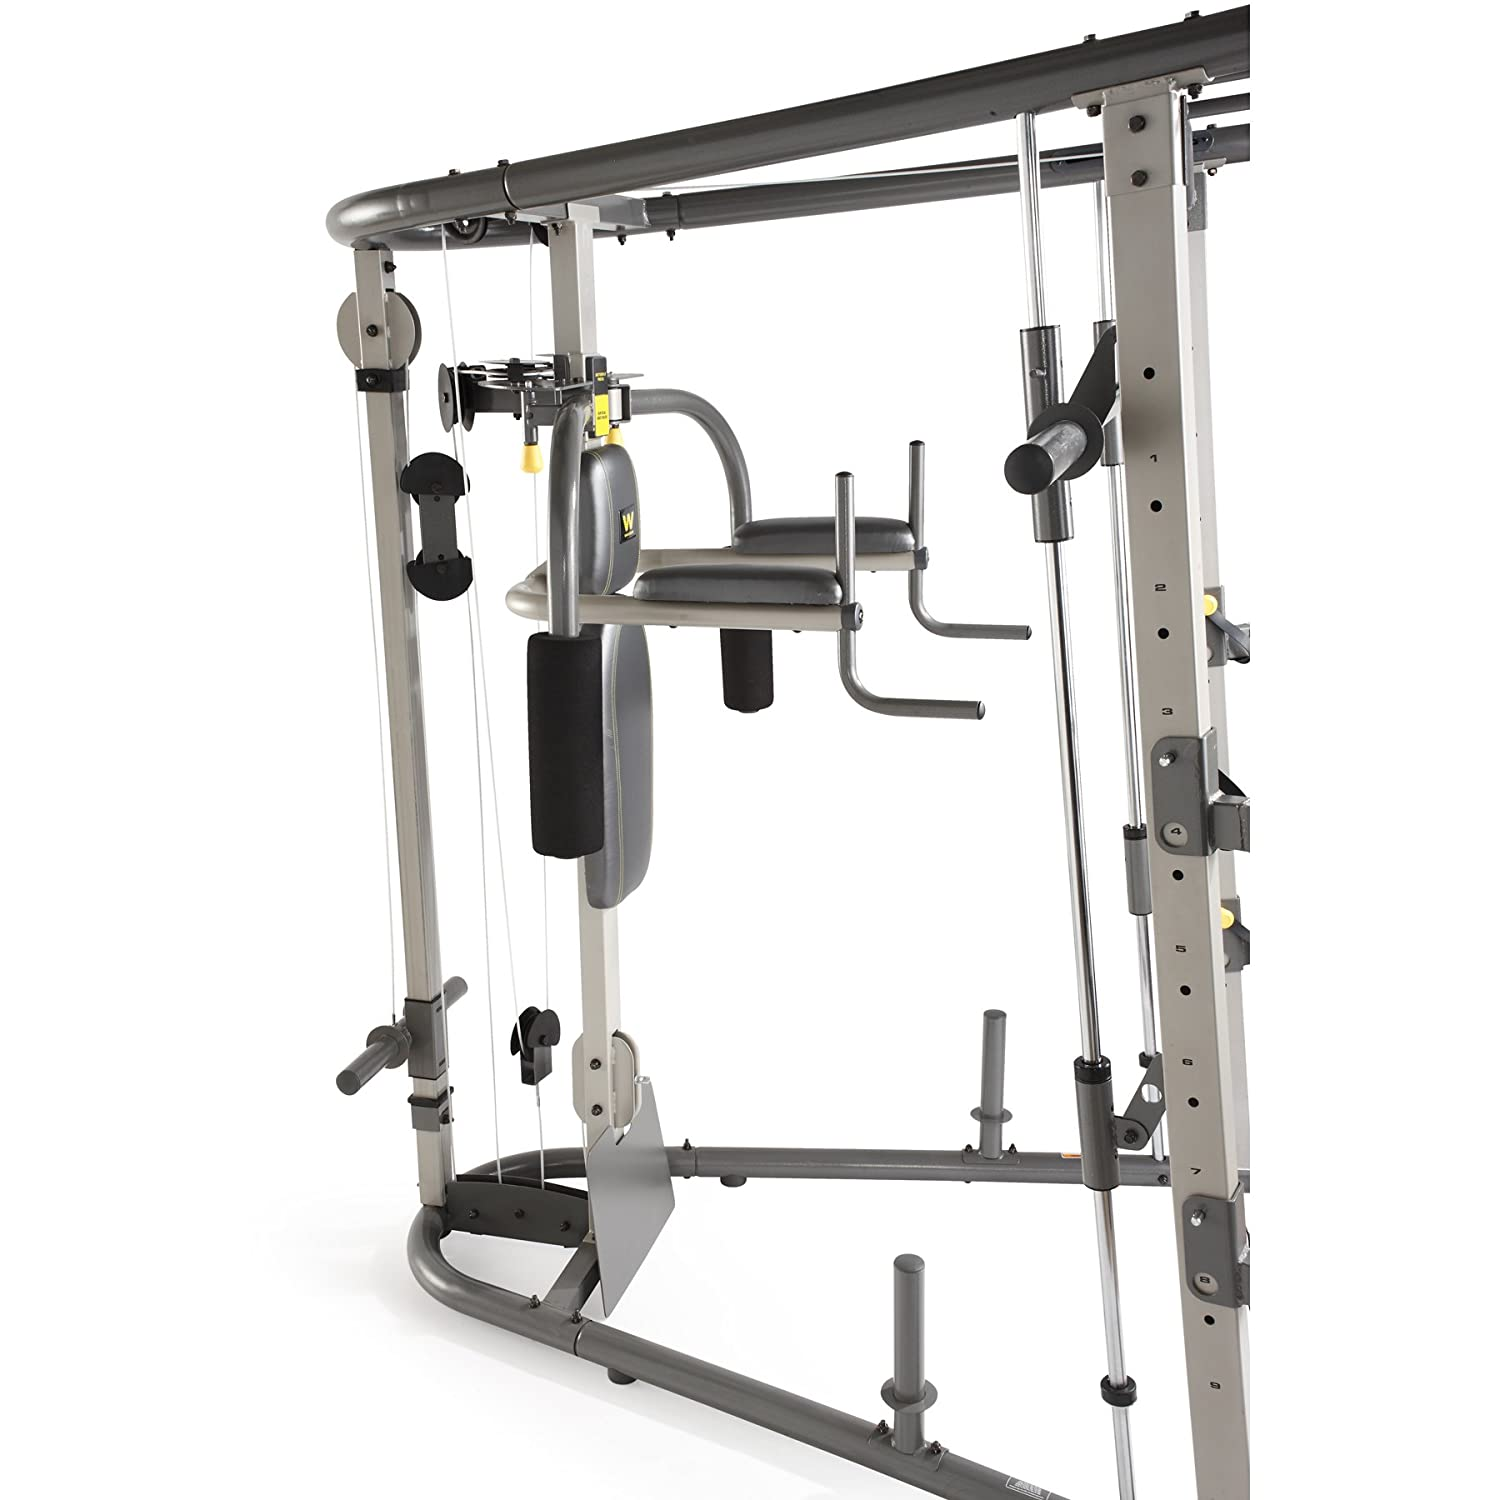 Weider C700 Smith Machine Gym Removable Weight Bench Cable Cross